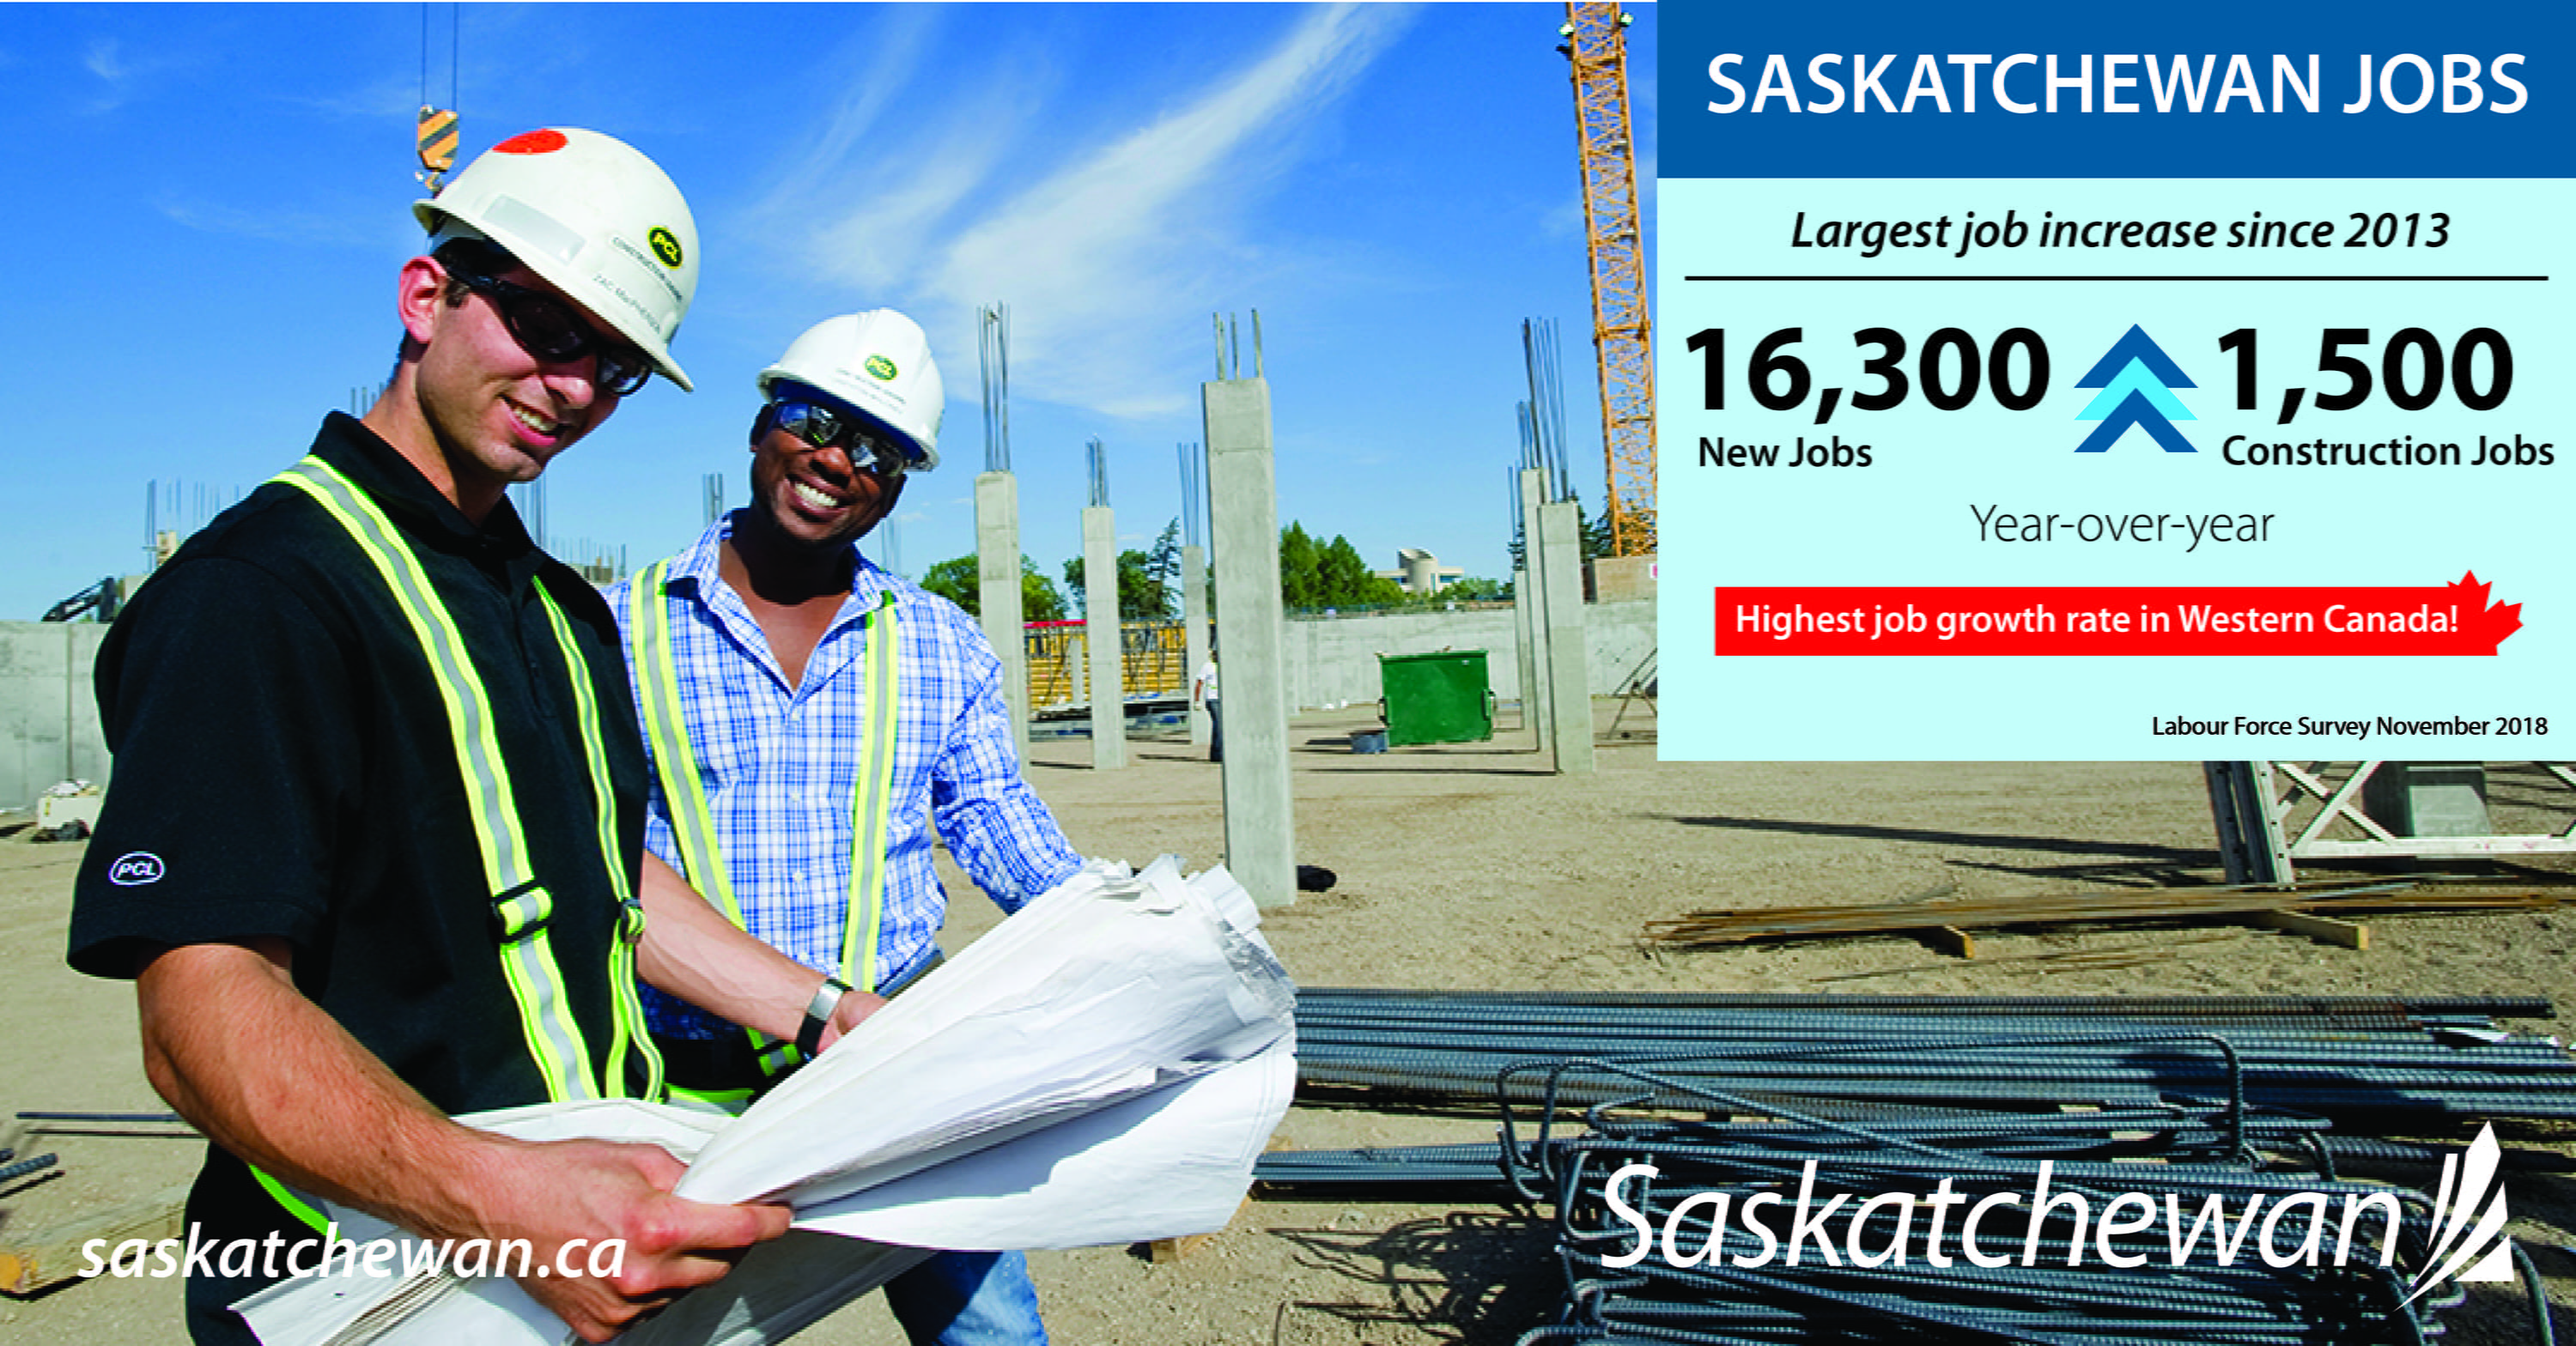 Highest Rate Of Job Growth In Western Canada | News and